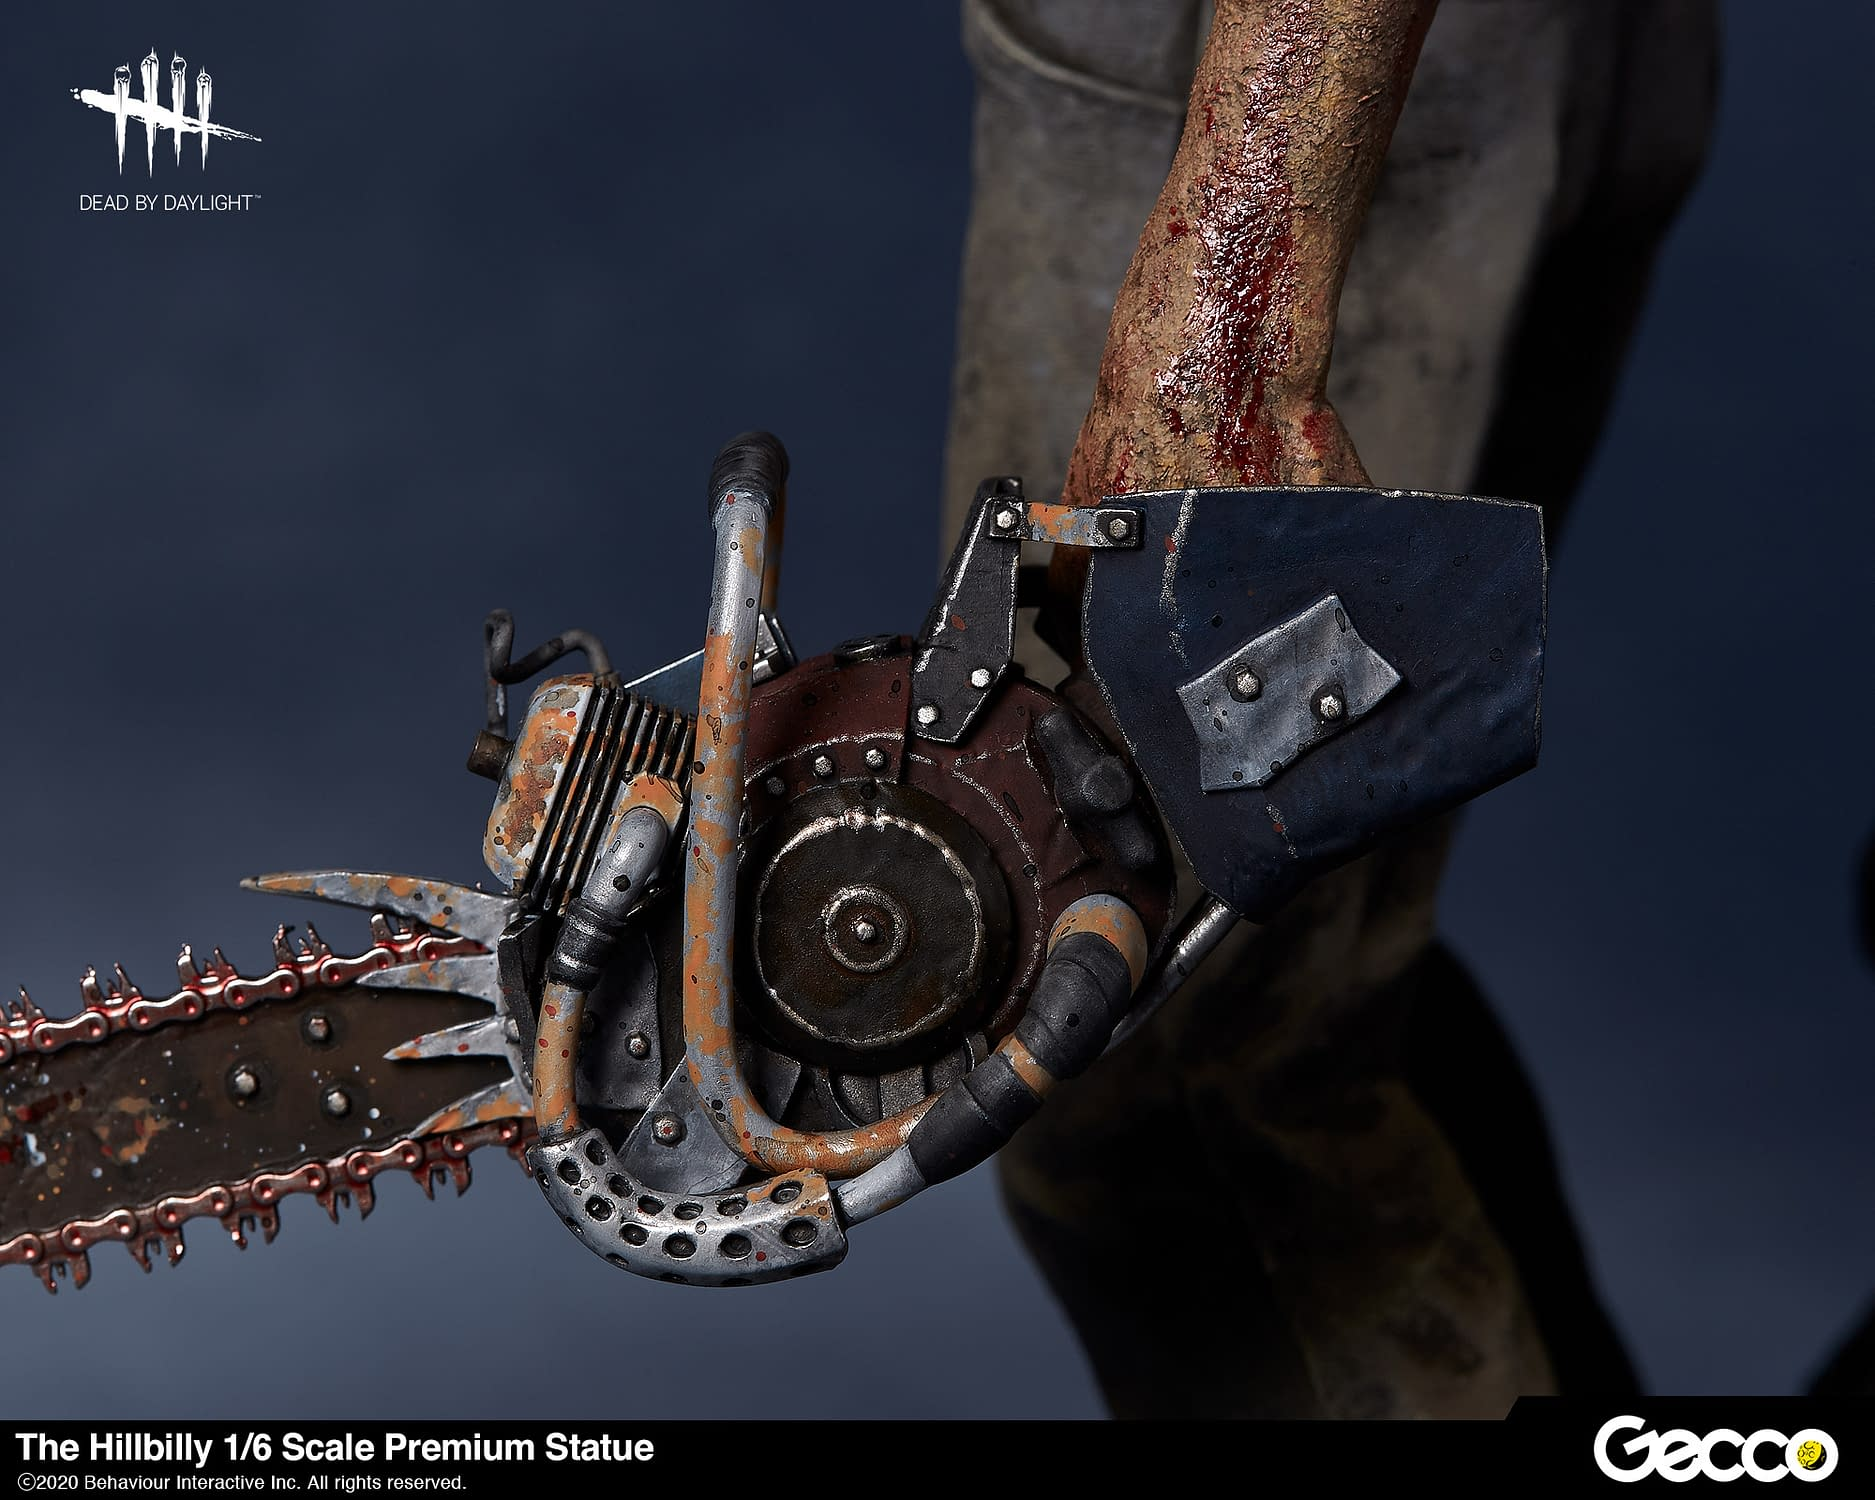 Gecco-Dead-by-Daylight-Hillbilly-Statue-018